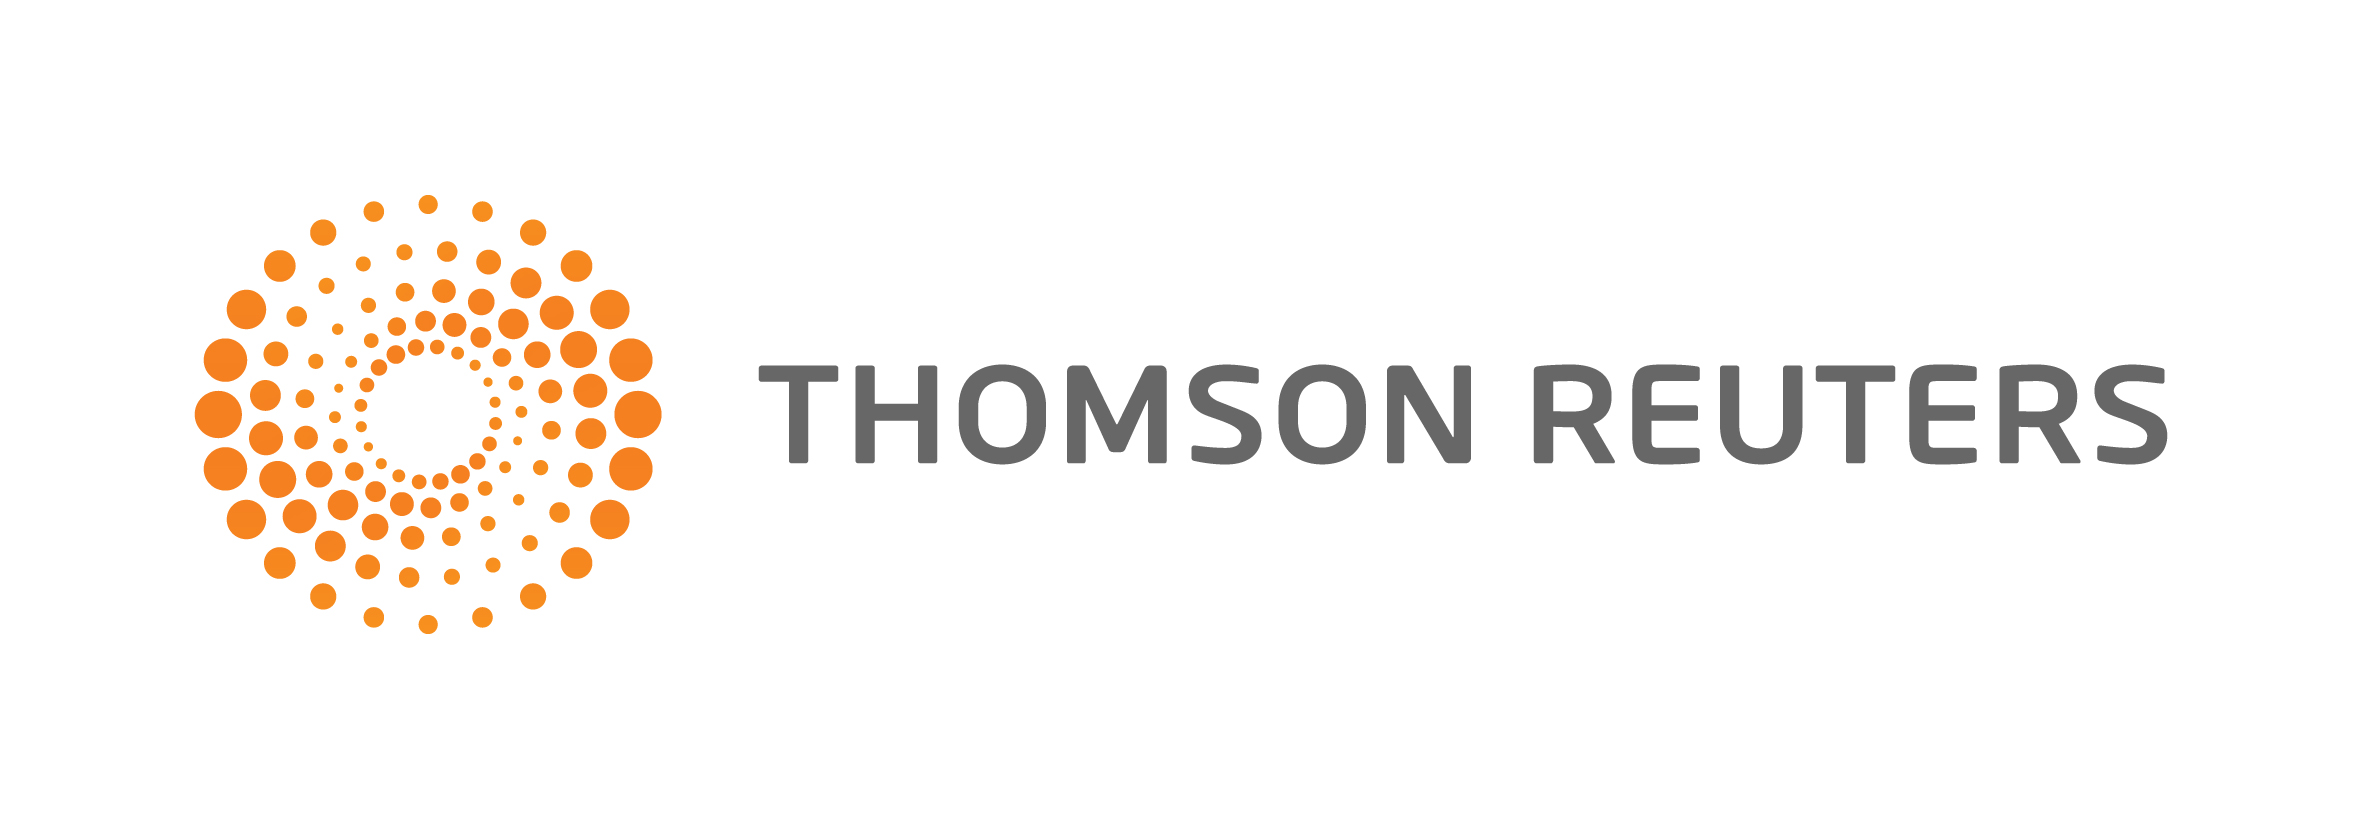 Thomson Reuters Corp logo